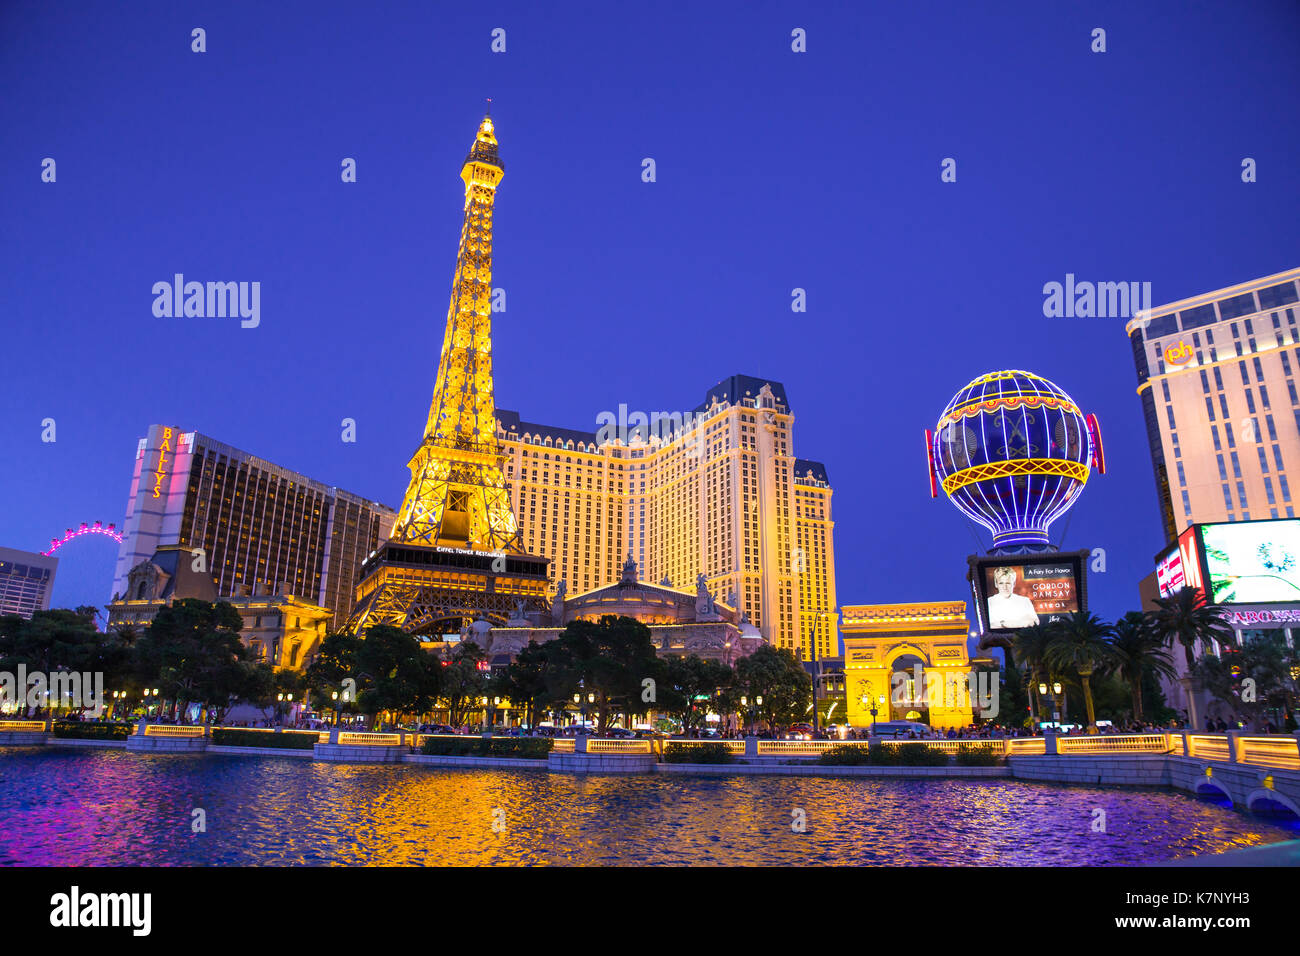 LAS VEGAS, NEVADA - MAY 17, 2017: Beautiful night view of Las Vegas with Paris Resort Casino and hotels in view. - Stock Image